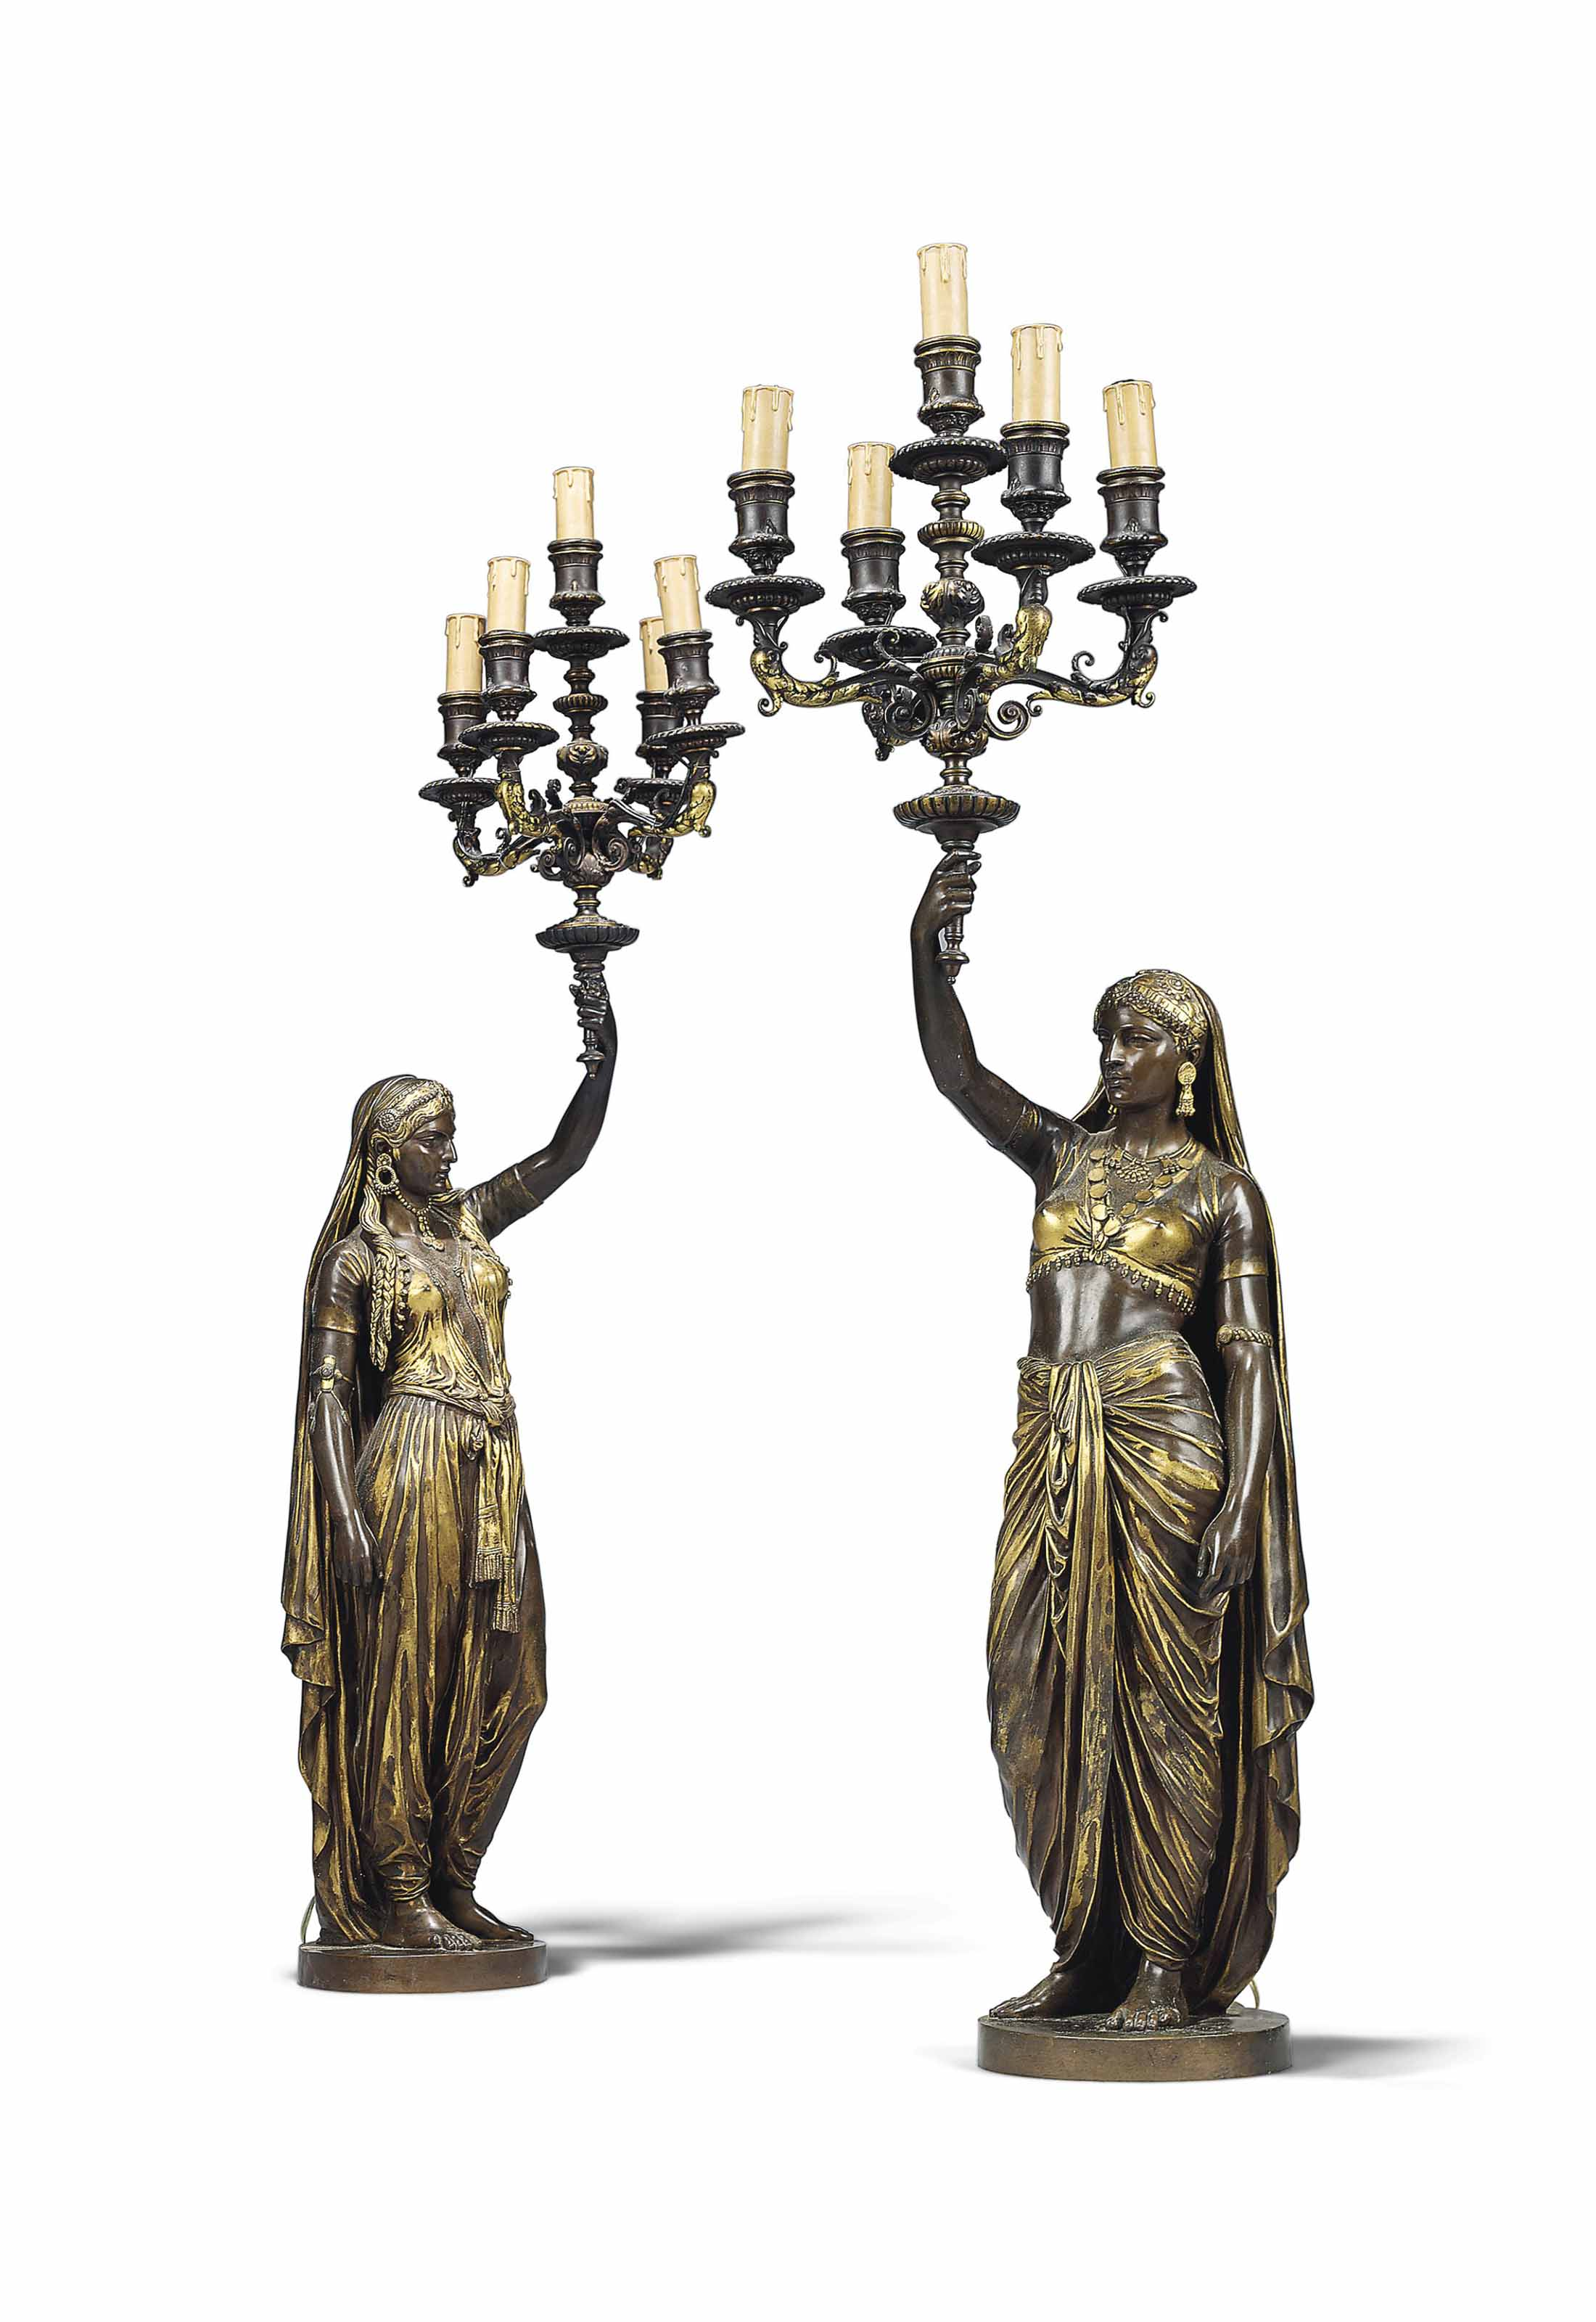 A PAIR OF FRENCH PARCEL-GILT AND PATINATED BRONZE FIGURAL FIVE-LIGHT TORCHERES